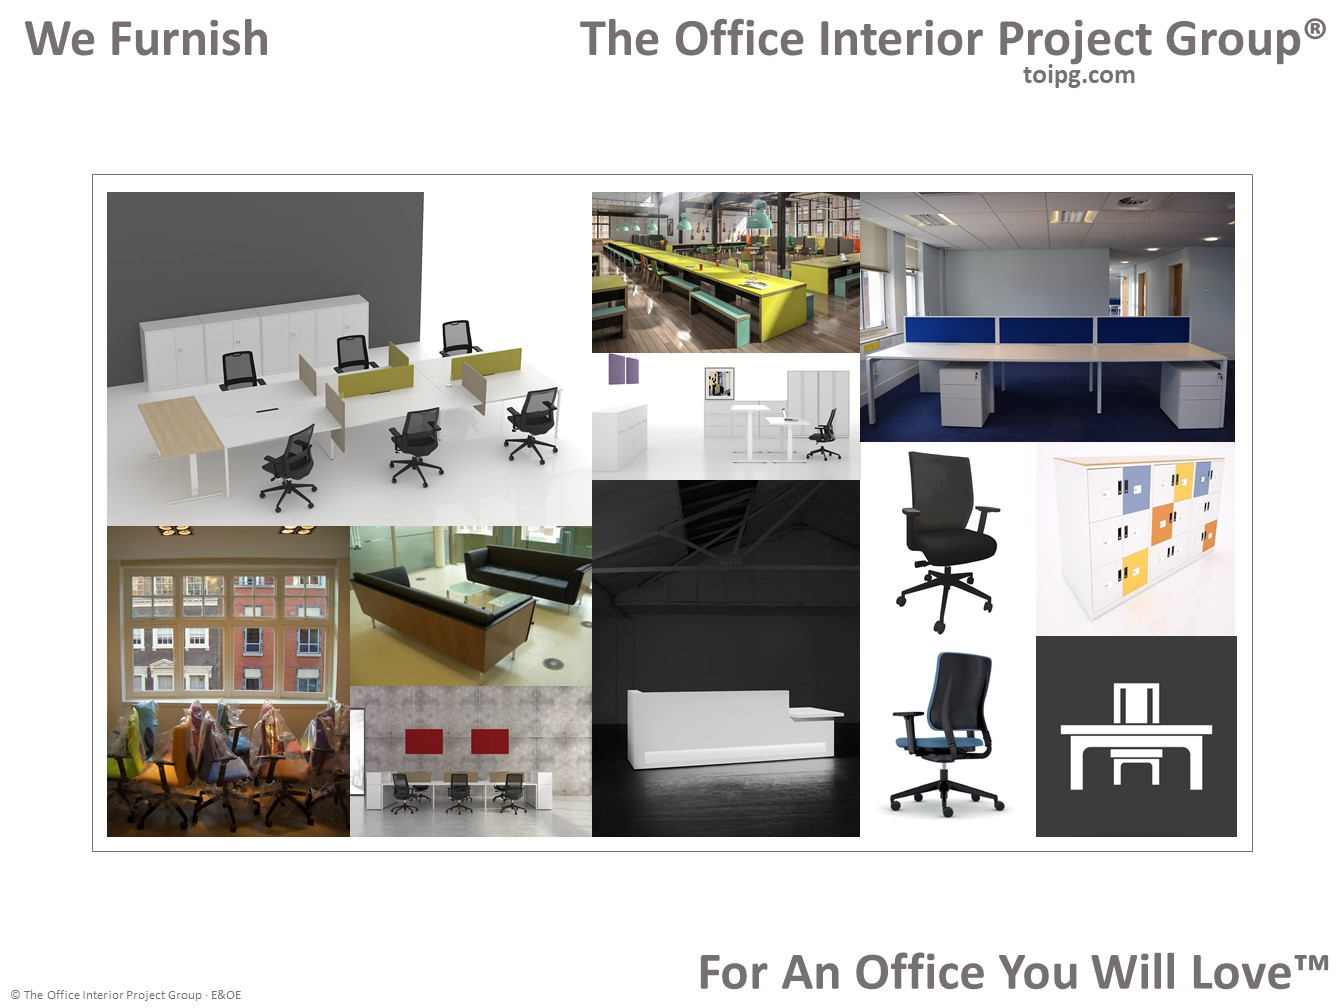 At The Office Interior Project Group®, We Furnish